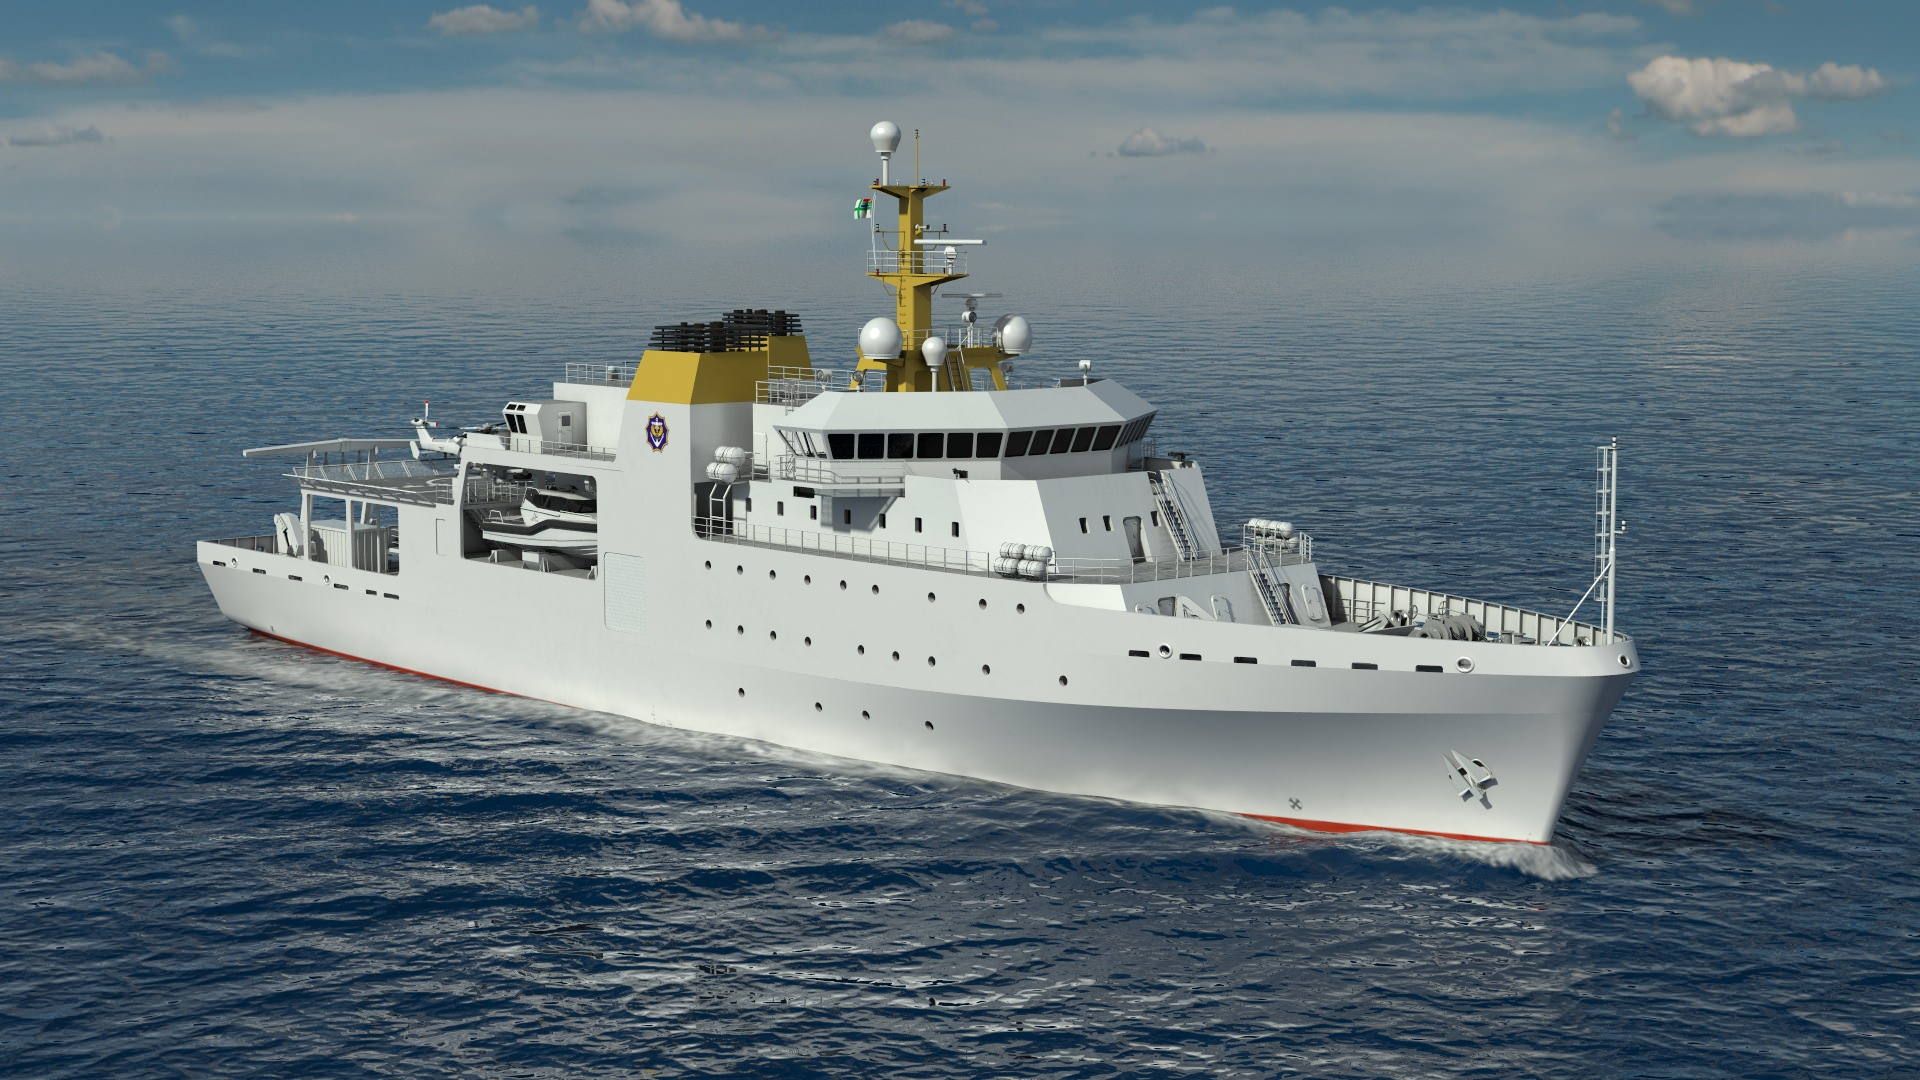 VARD 9 105 Hydrographic Survey Vessel for South African Navy render in perspective starboard view